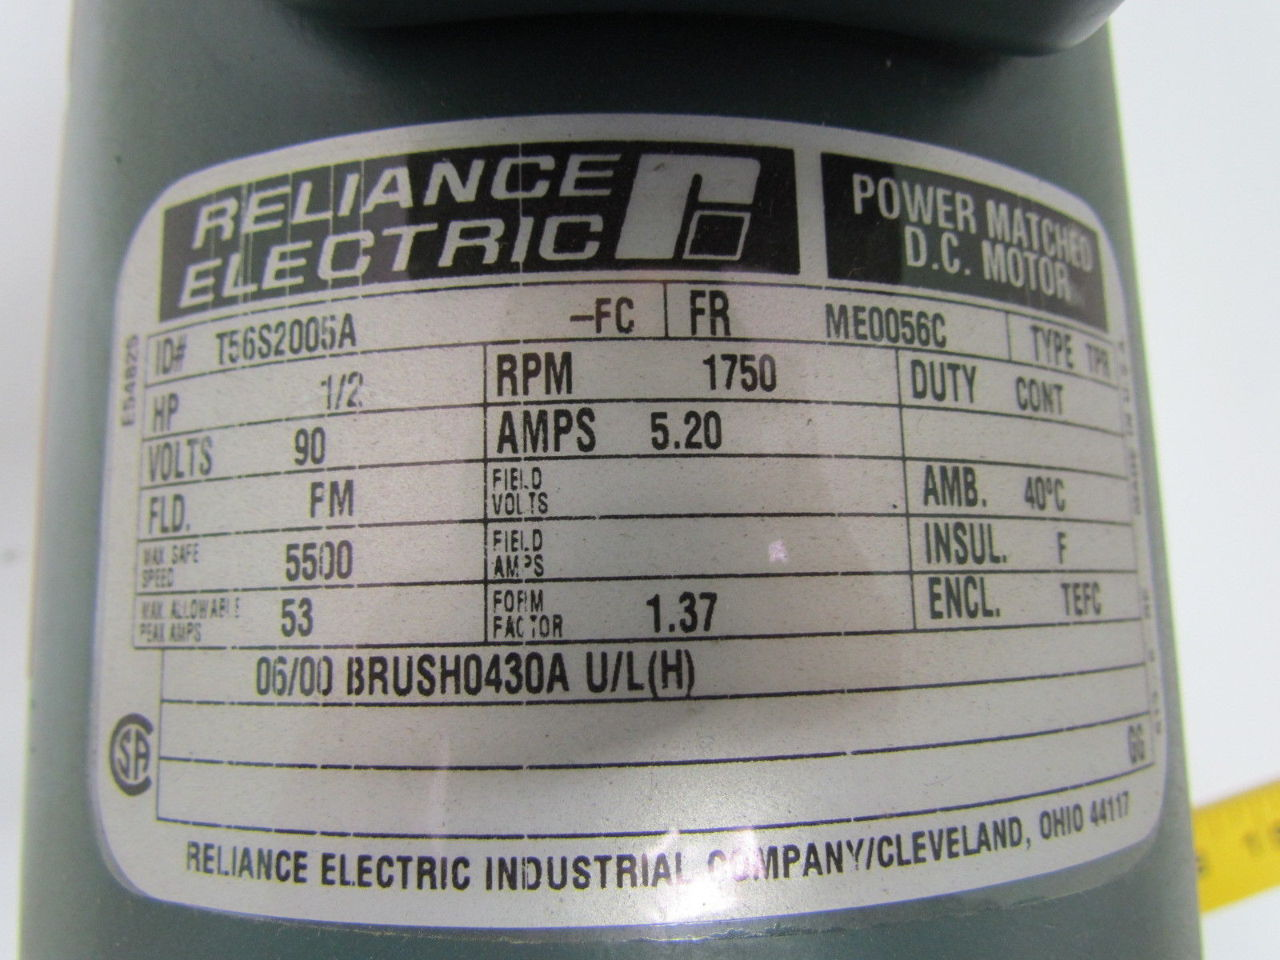 Reliance electric t56s2005a 1 2hp 90v 56c frame tefc power for Reliance dc motor frame size chart